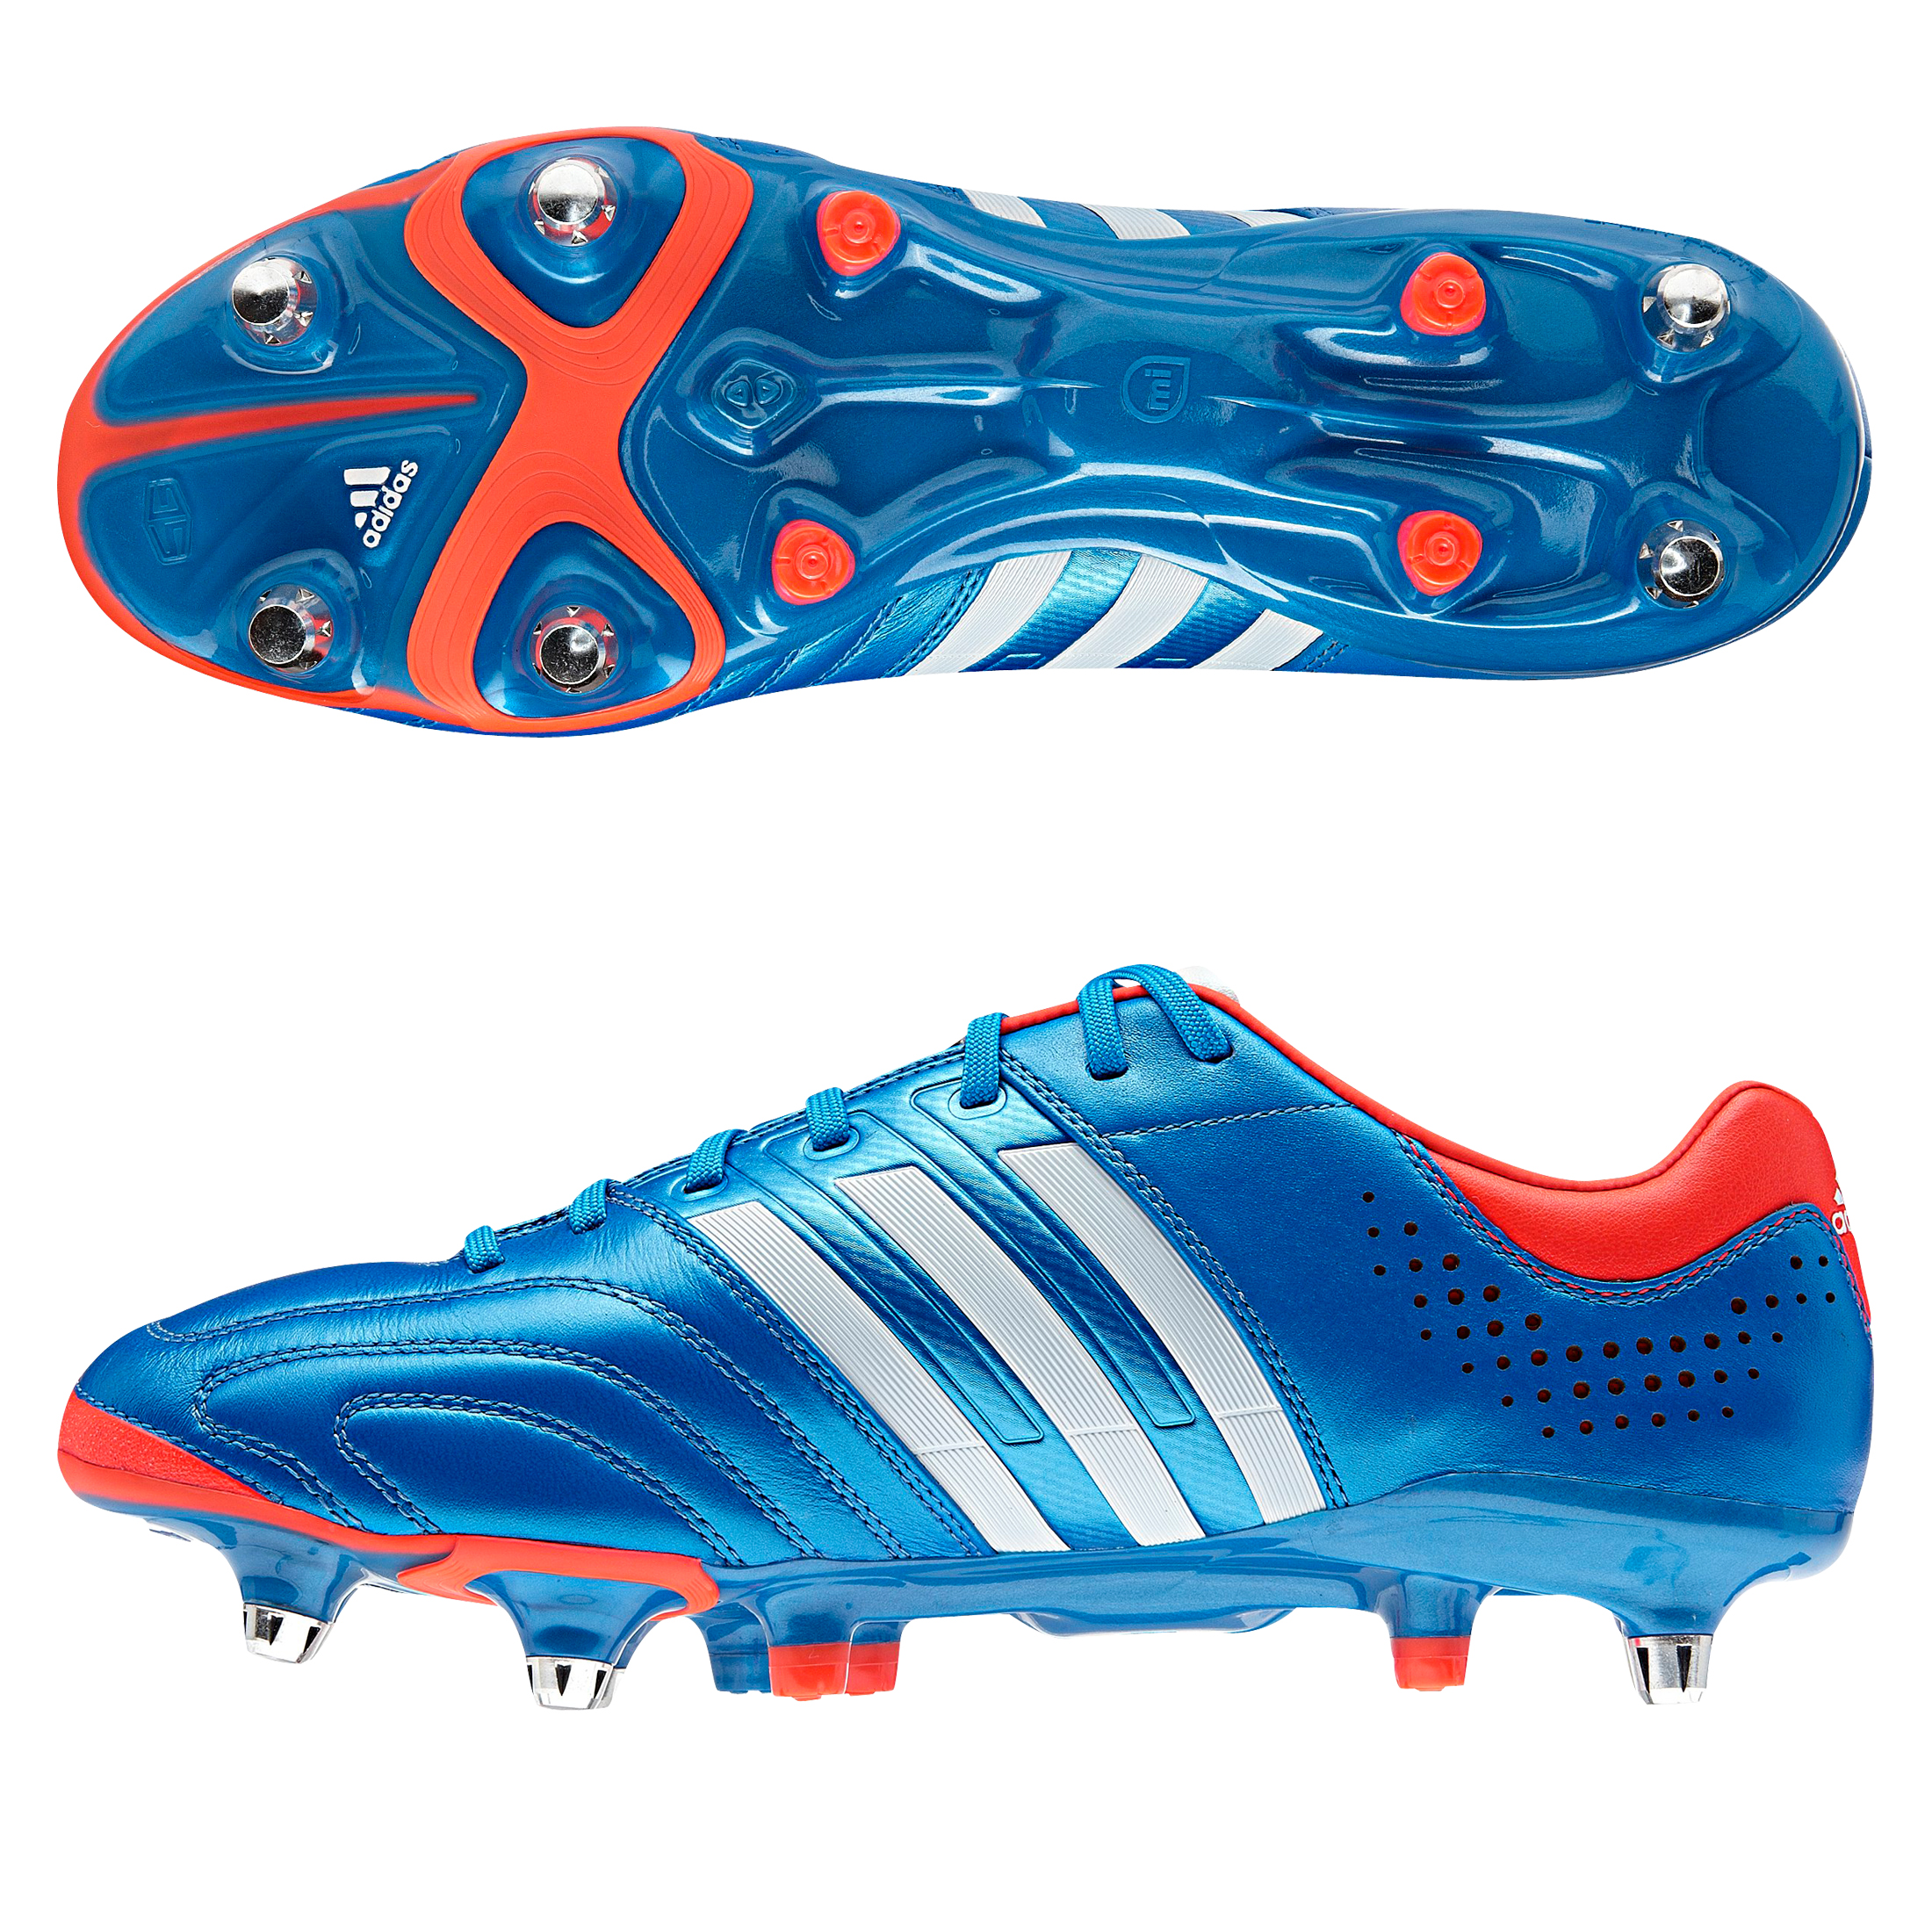 Adidas Adipure 11Pro XTRX Soft Ground Football Boots - Bright Blue/Running White/Infrared